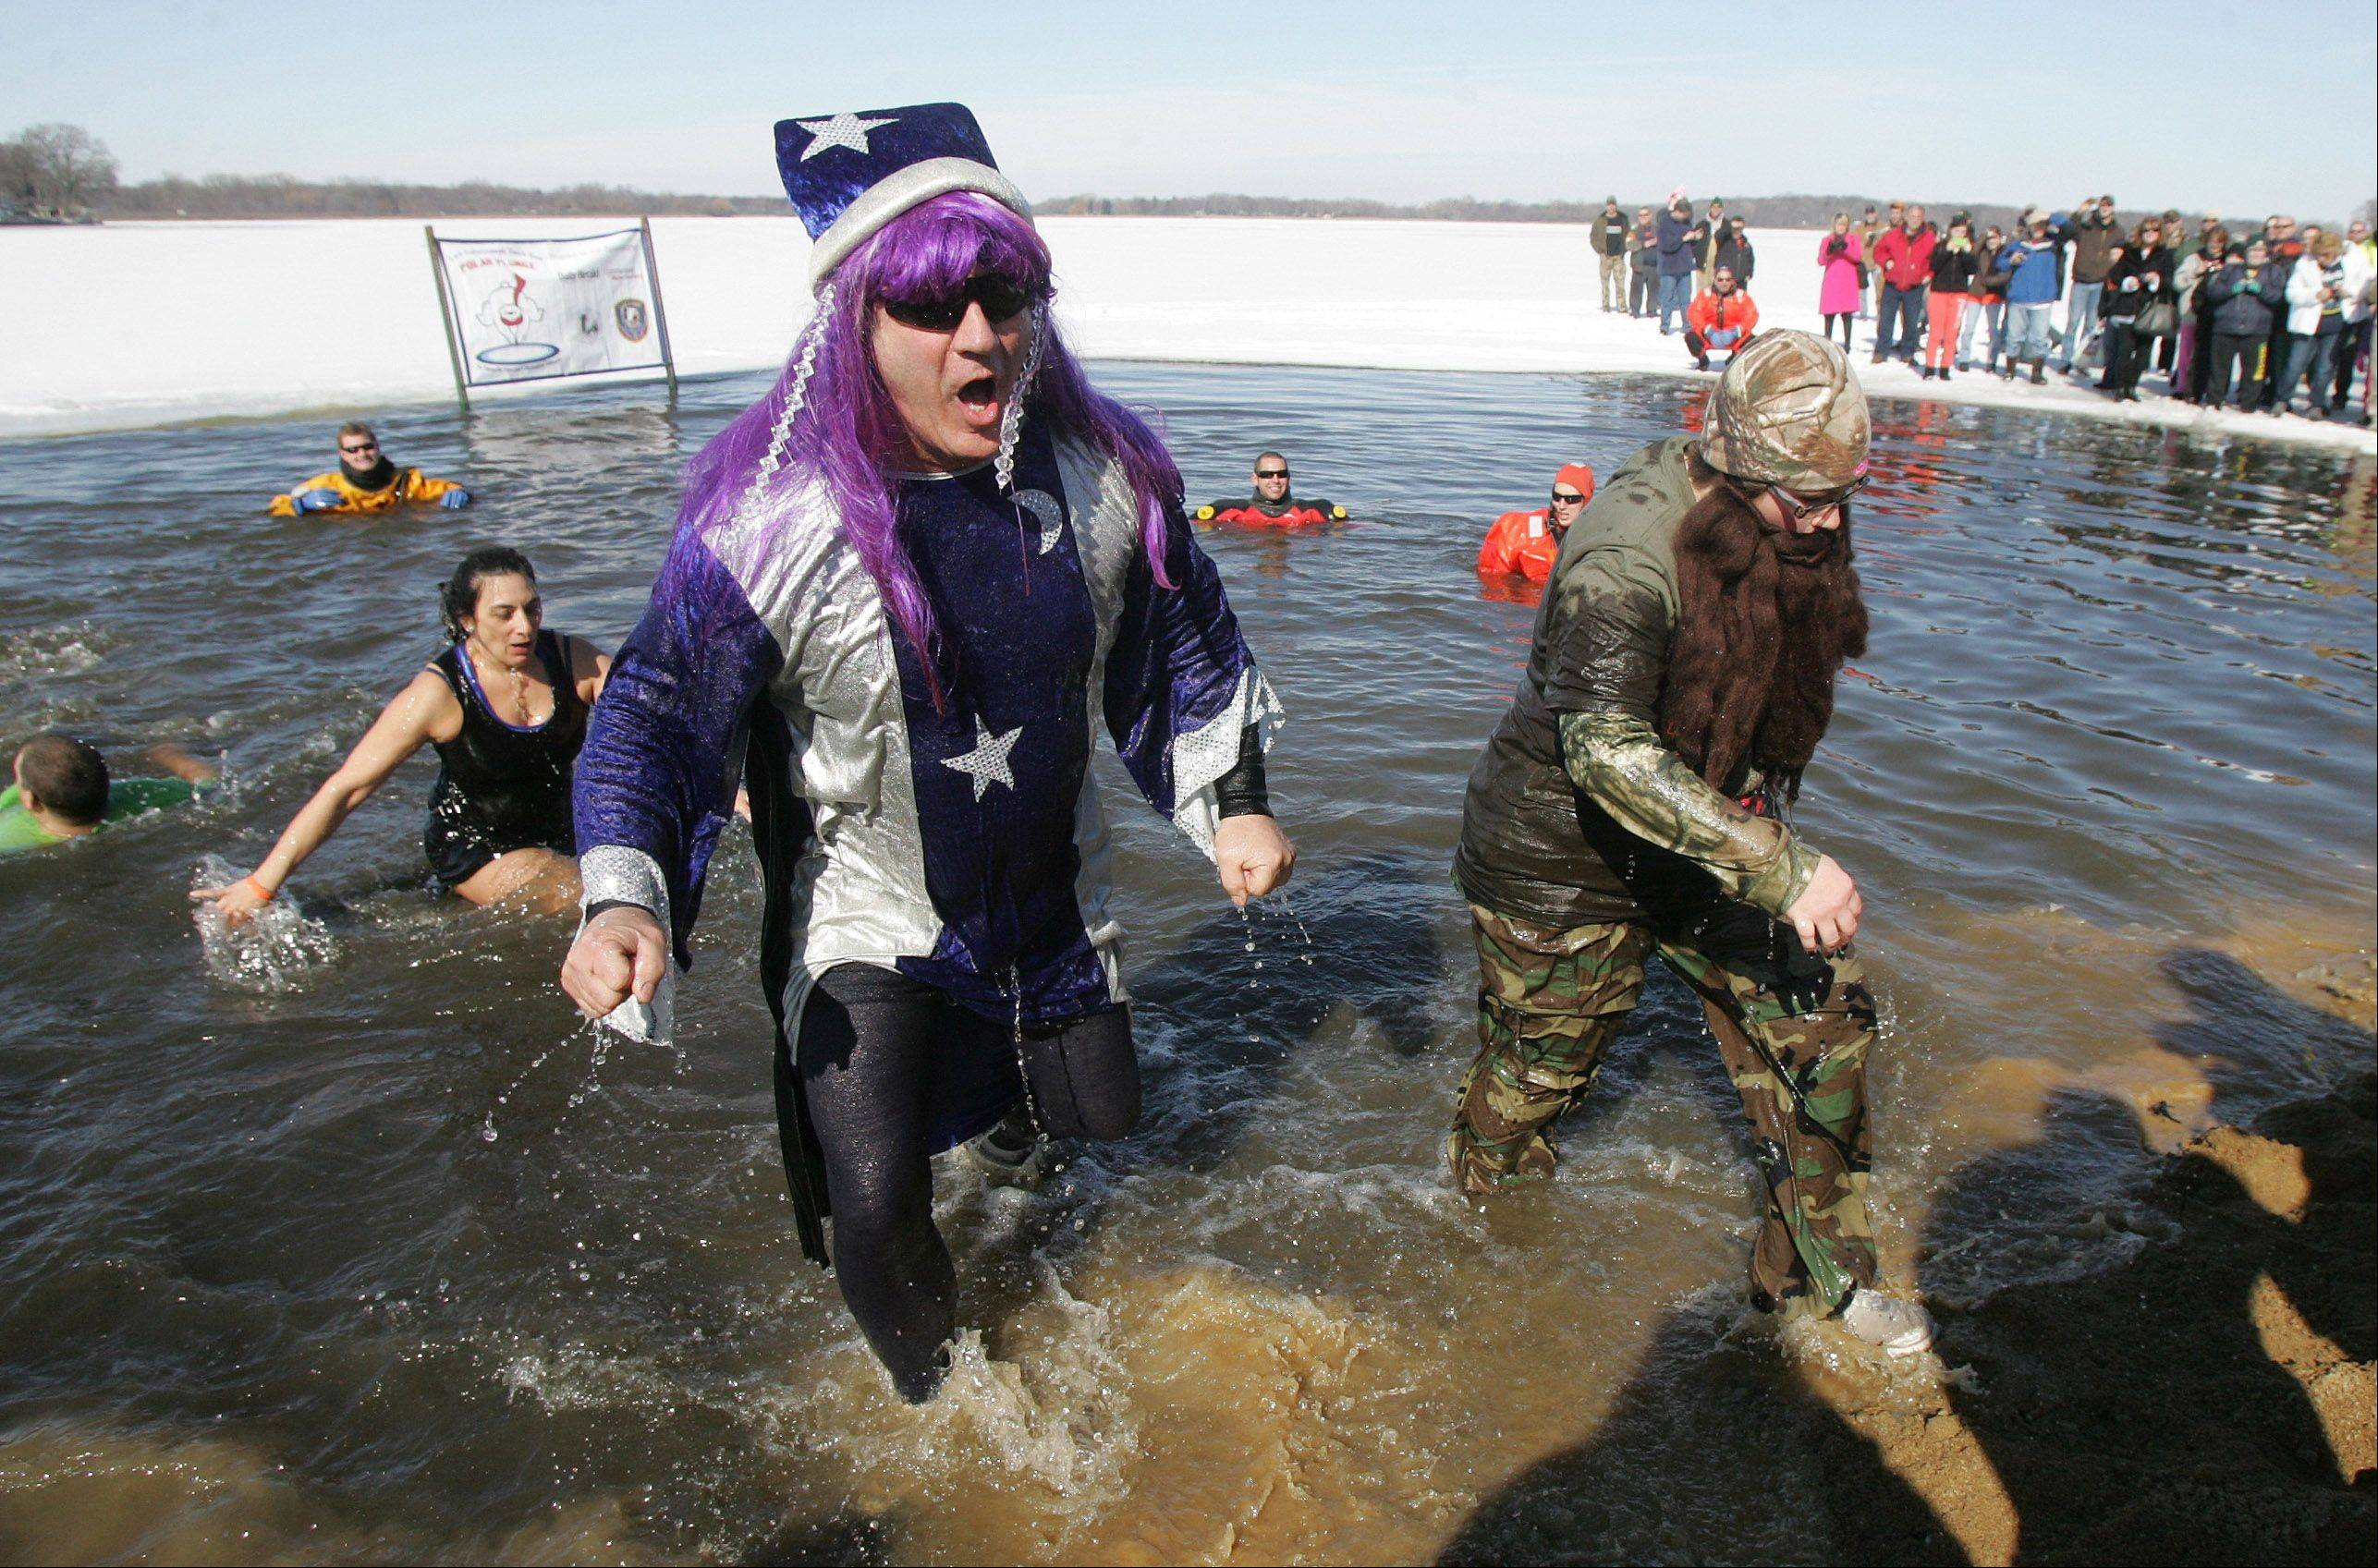 Tom Muehlfelder, left, and Amy Serafin, both of Fox Lake, exit the frigid water during the annual Fox Lake Polar Plunge Sunday at Lakefront Park. The funds raised will benefit Special Olympics Illinois Northeastern/Area 13, which serves athletes with physical and intellectual disabilities in Lake and McHenry counties.